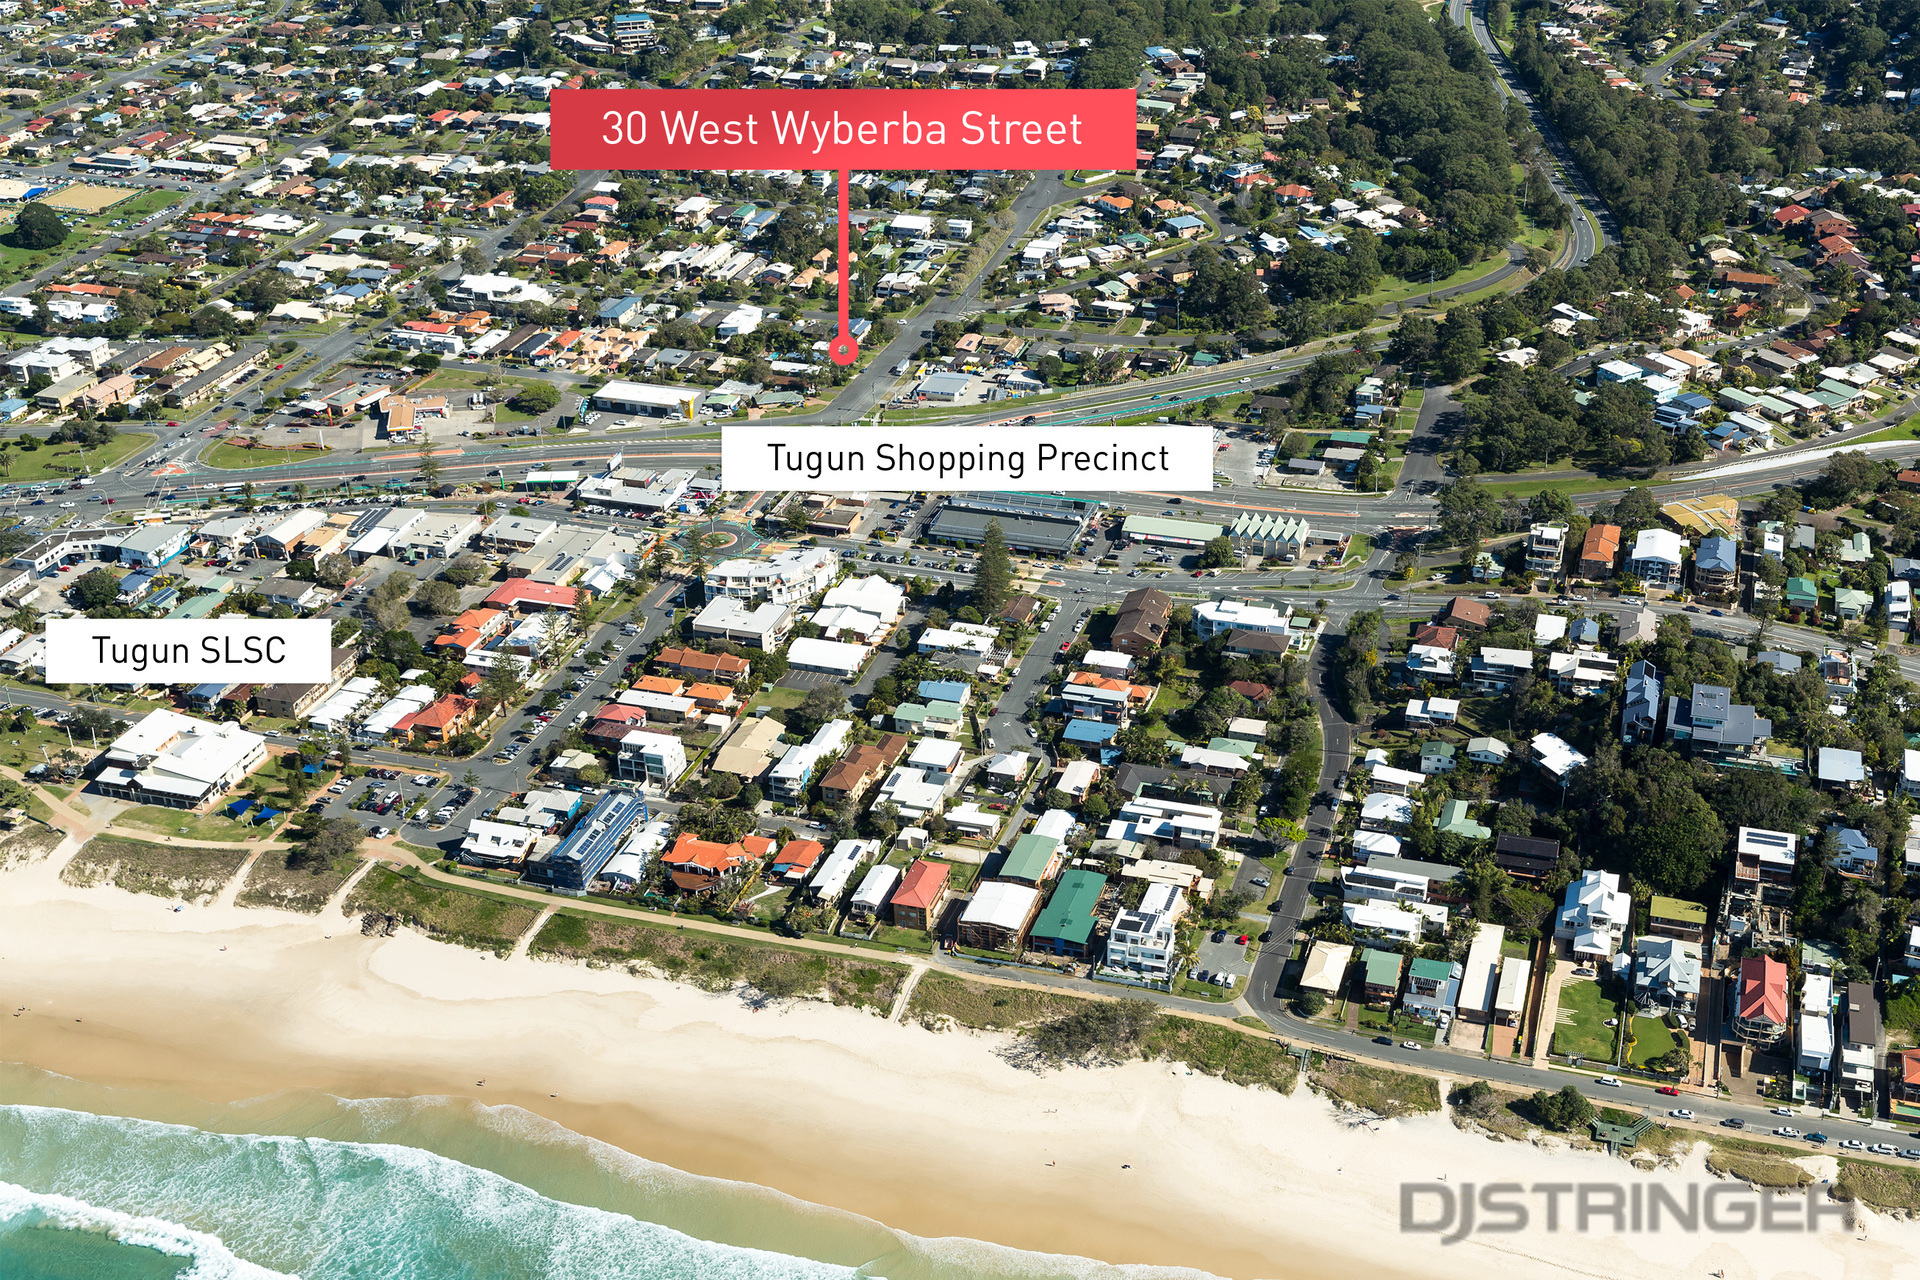 30 West Wyberba Street Tugun